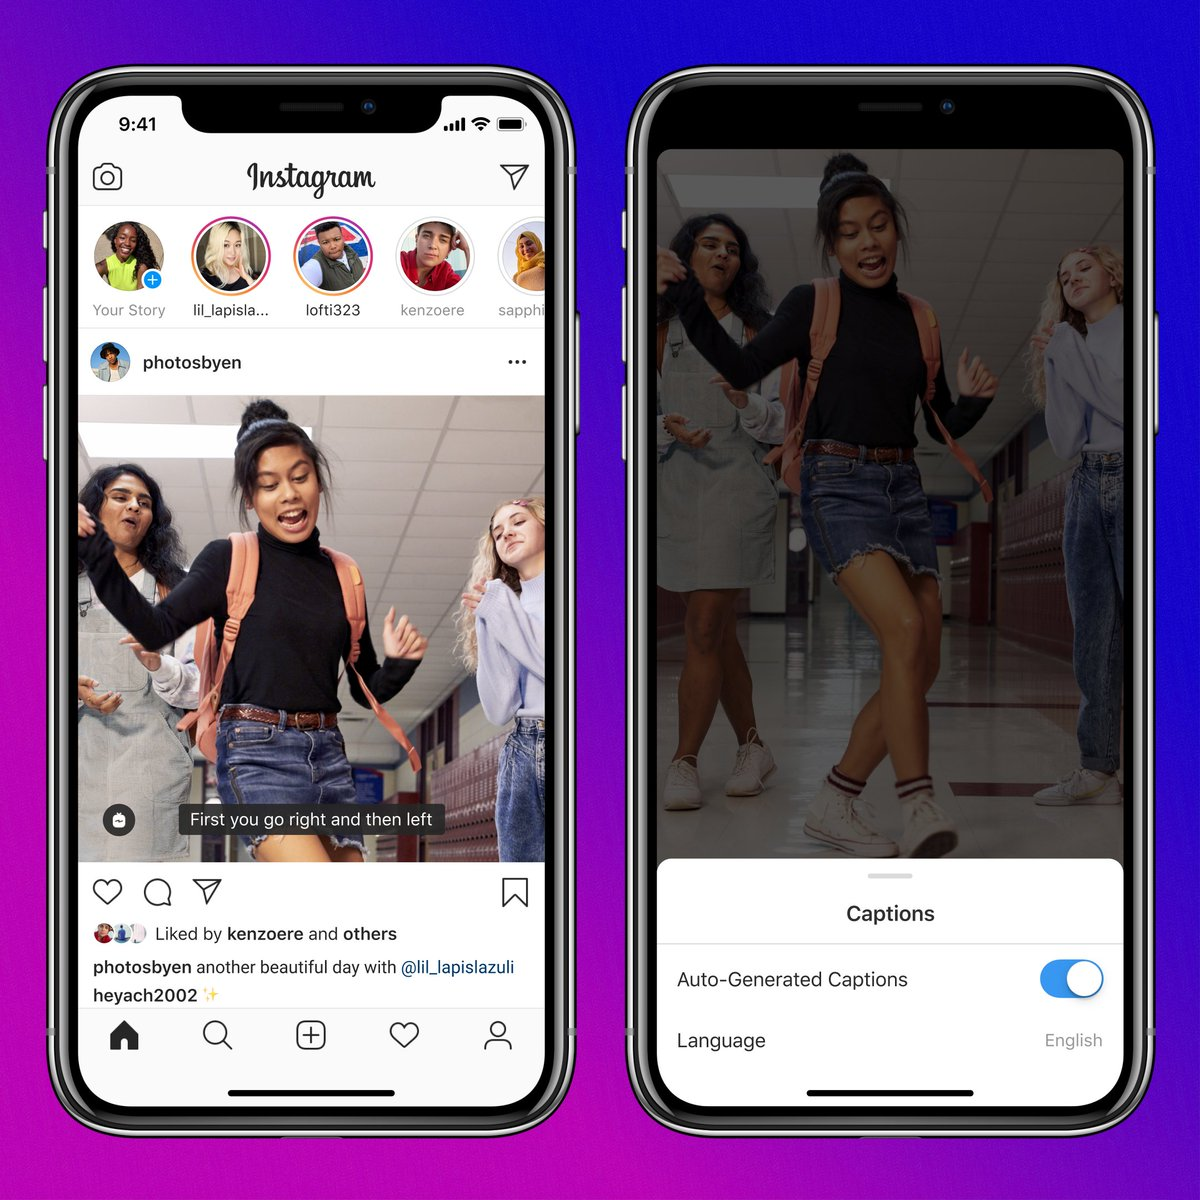 Automatic captions, rolling out on IGTV today. 🙋♀️  Go to your settings and turn on video captions or find the option in the video drop-down menu.  Captions will be available in 16 languages to start. Stay tuned for updates as we expand to more surfaces and countries. https://t.co/g3zBUBjCDr